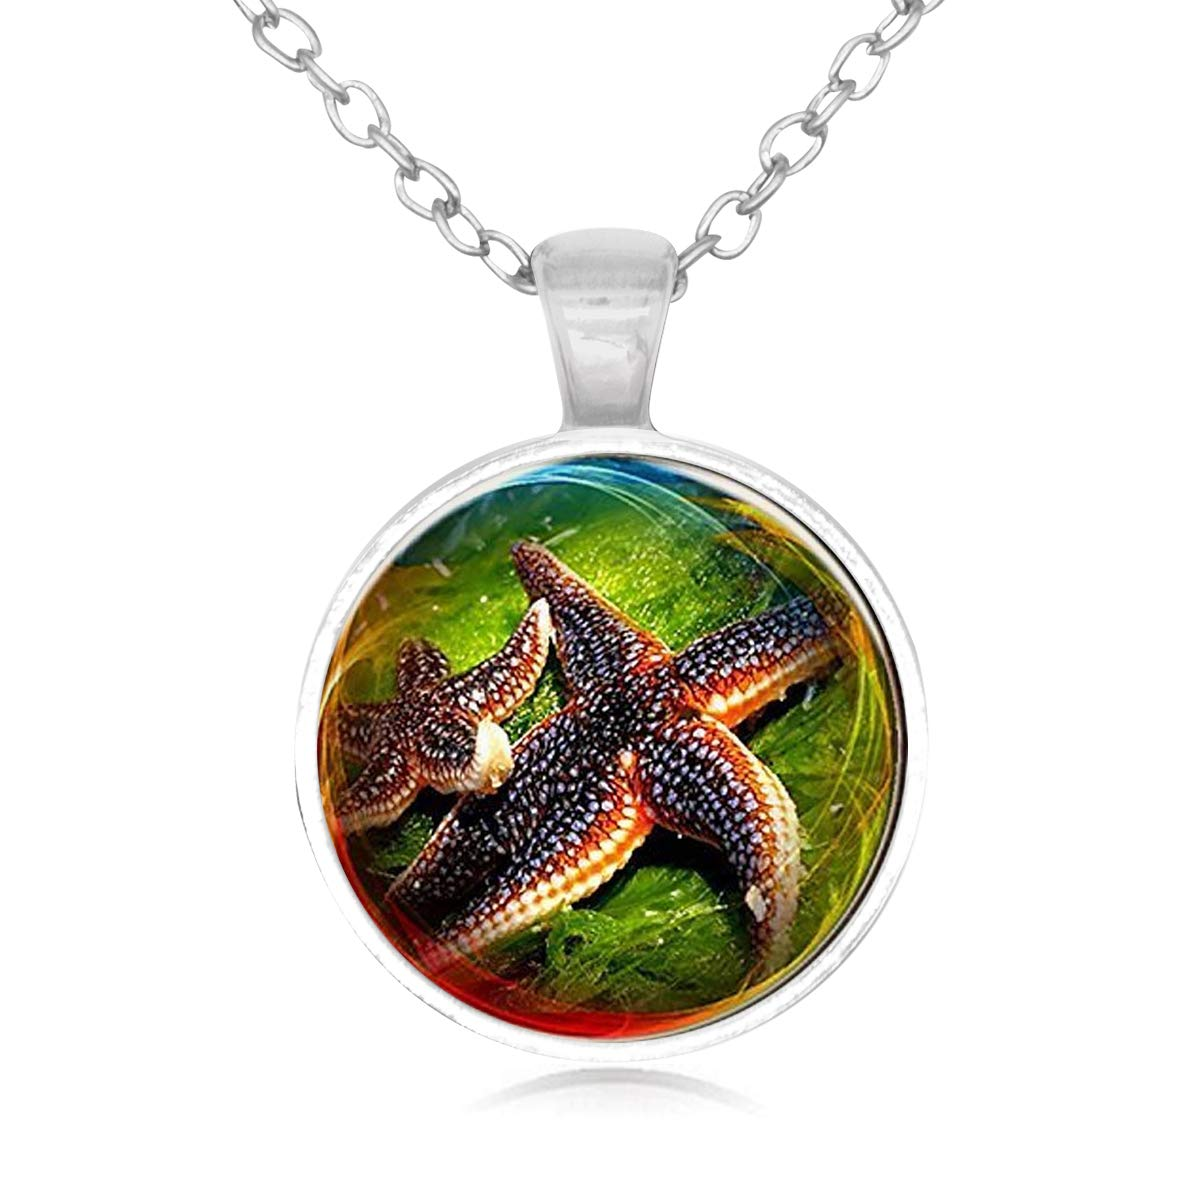 Family Decor Starfish Pendant Necklace Cabochon Glass Vintage Bronze Chain Necklace Jewelry Handmade